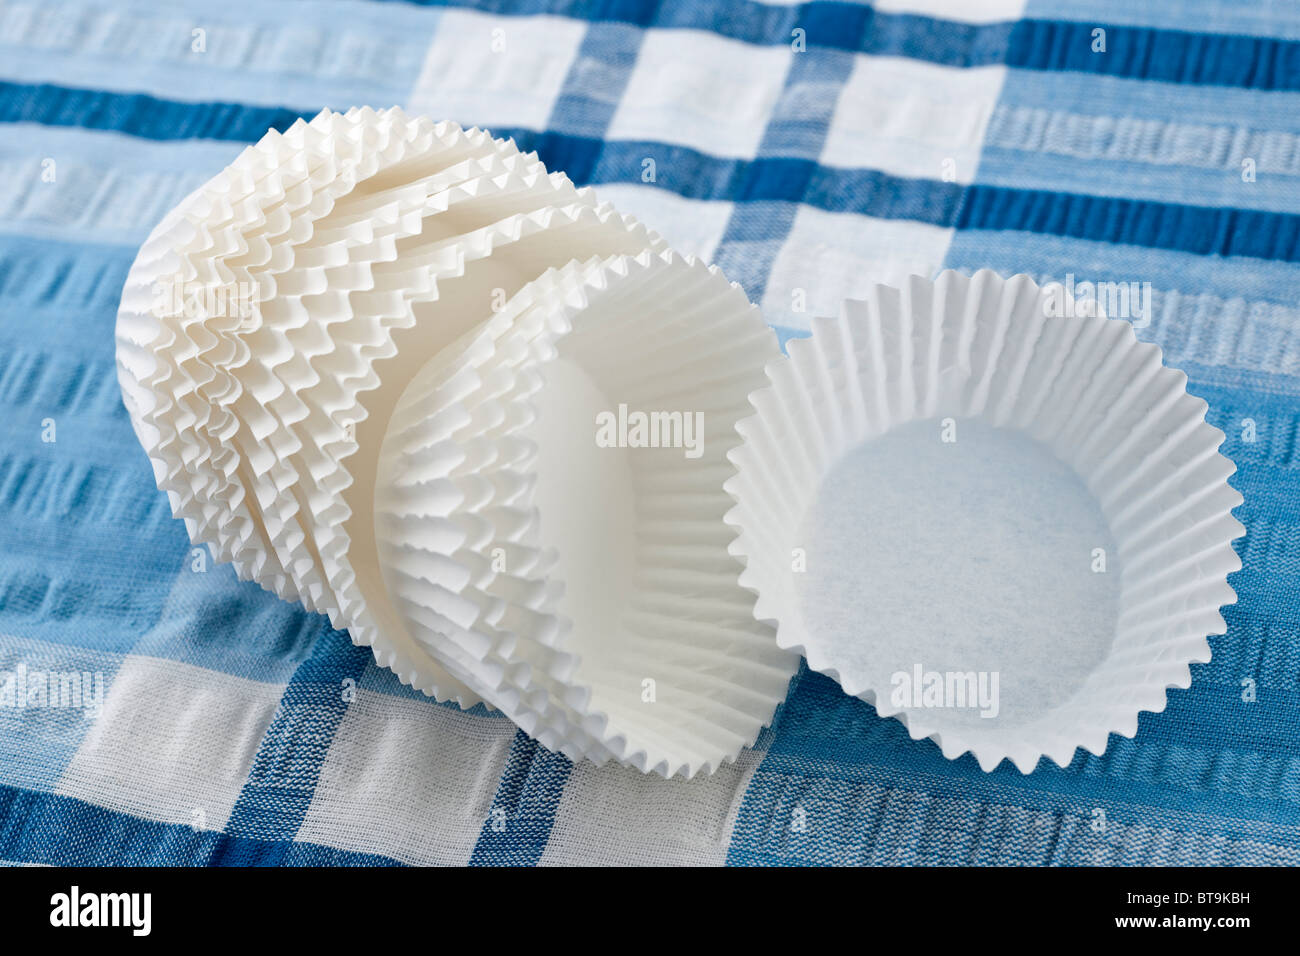 White pastry cases on a blue tablecloth - Stock Image